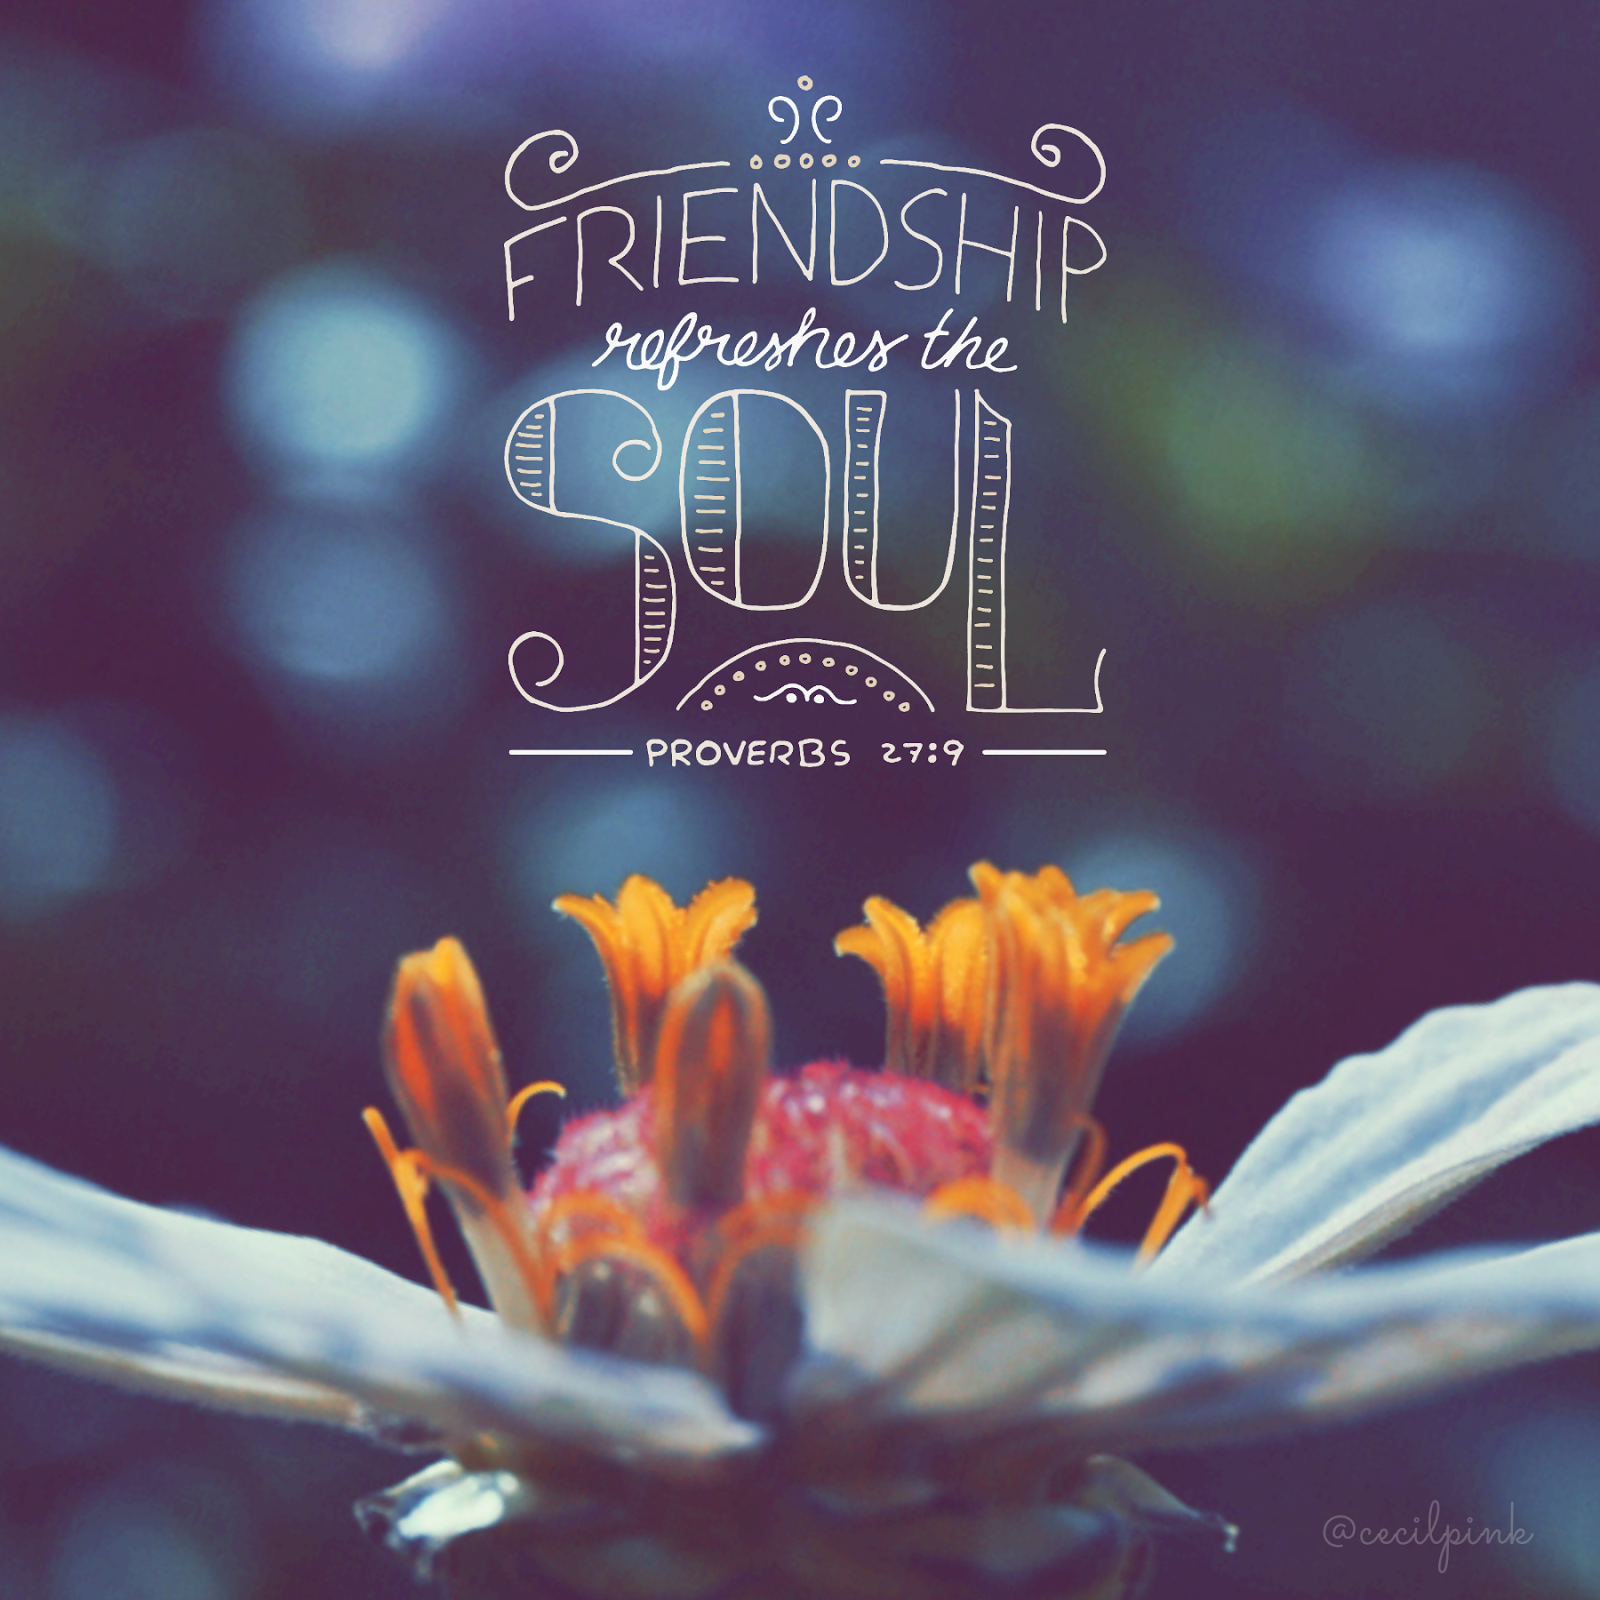 Friendship Quotes Religious: Friendship Refreshes The Soul. Proverbs 27:9